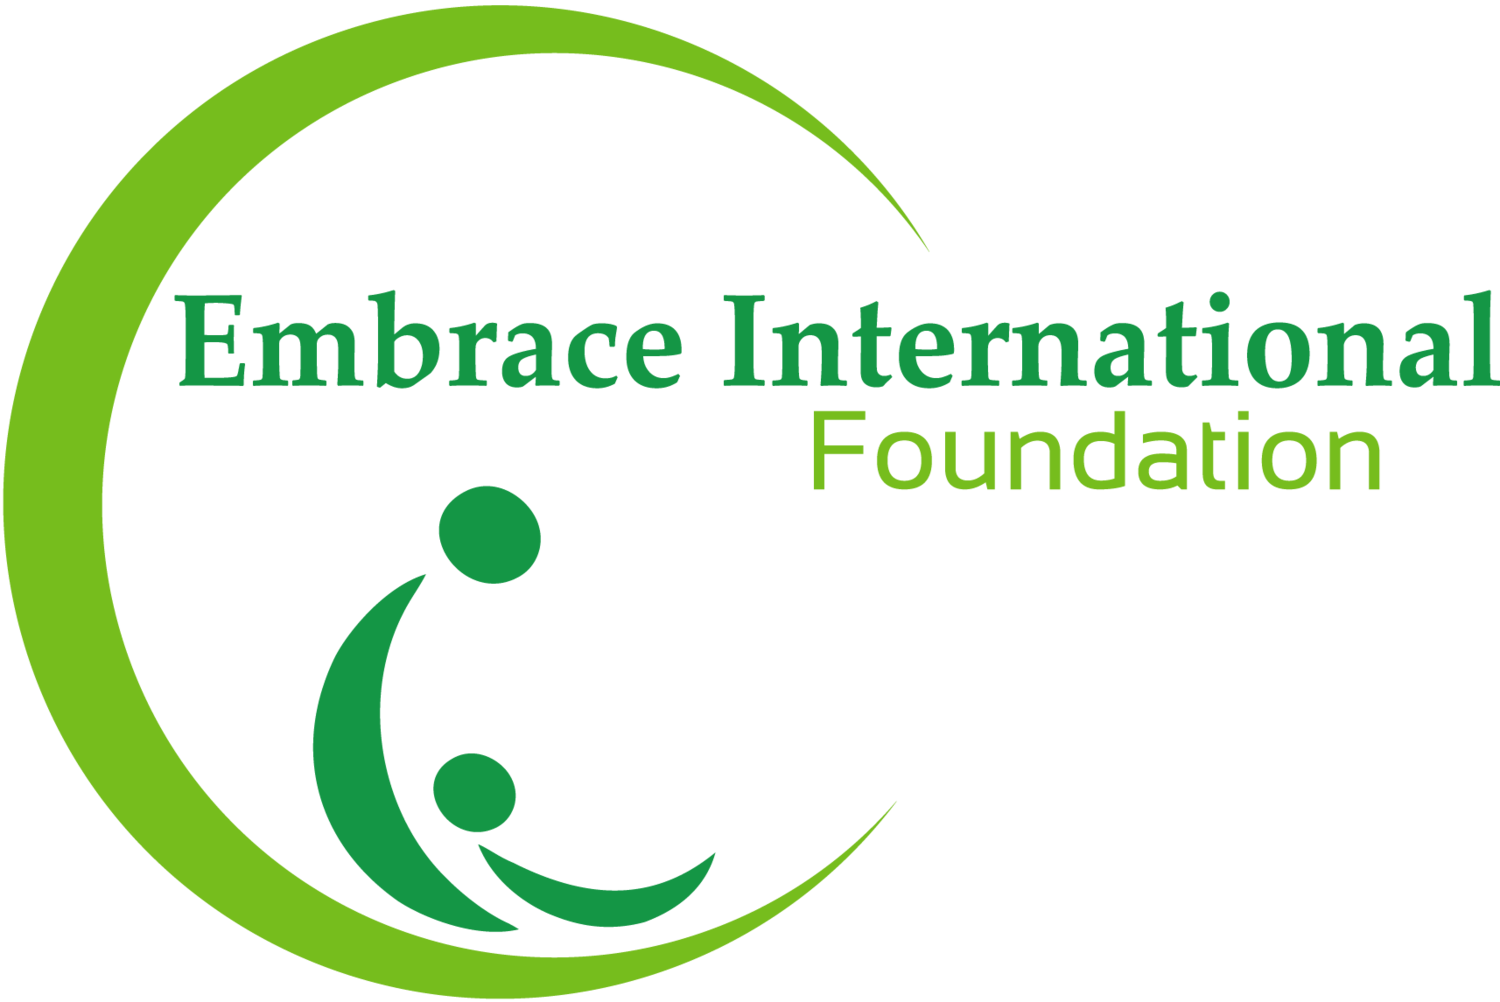 Embrace International Foundation